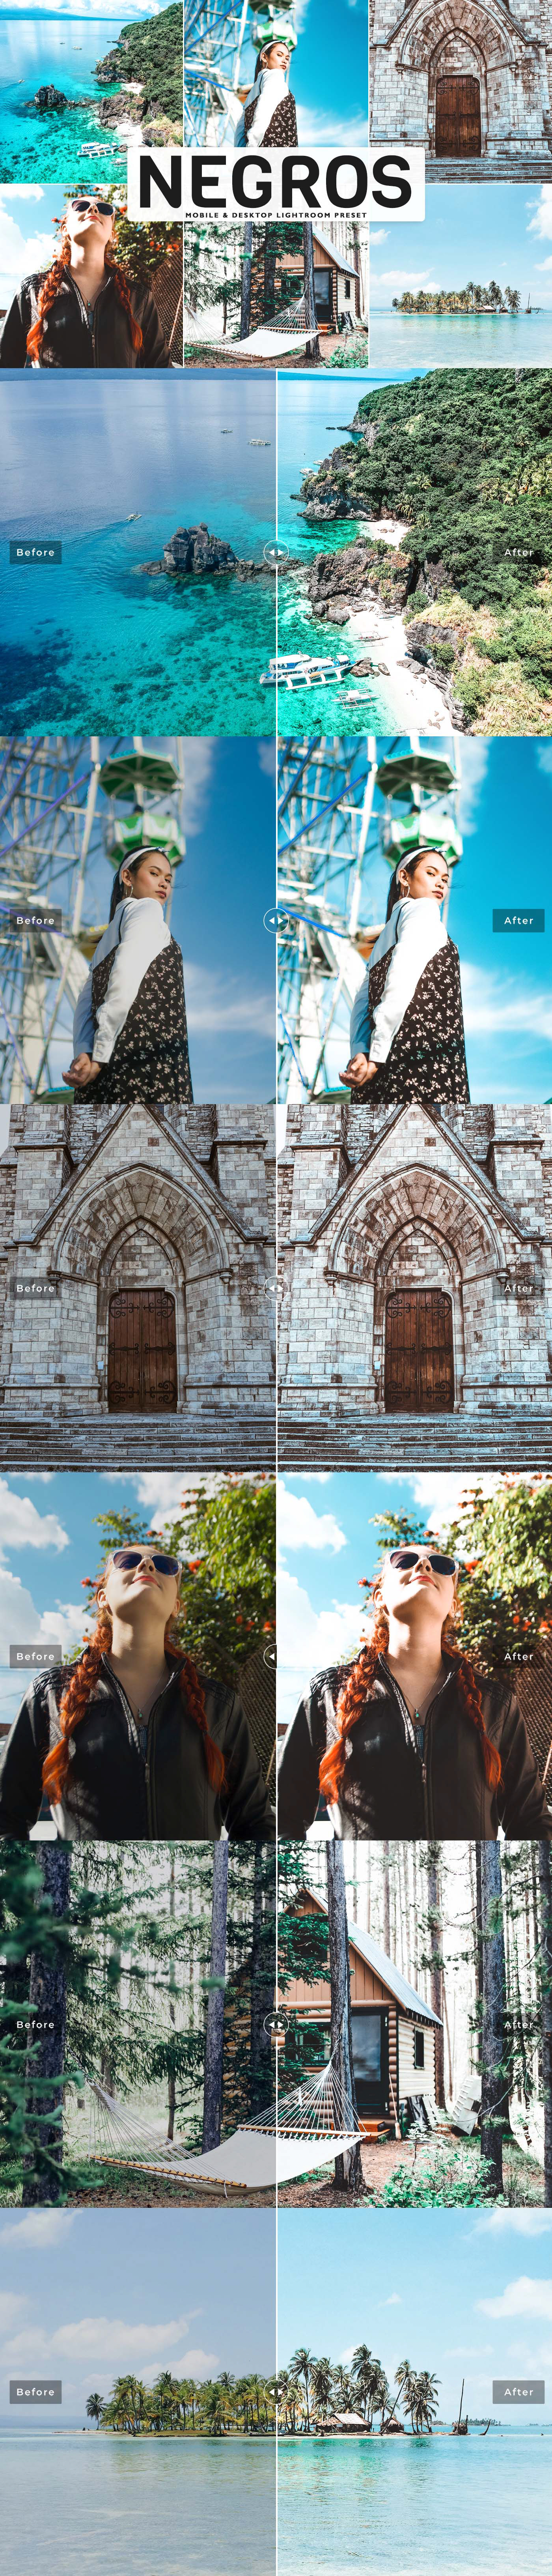 Free Negros Lightroom Preset will help you add beautiful filters, faded, glowing brown & colorful.